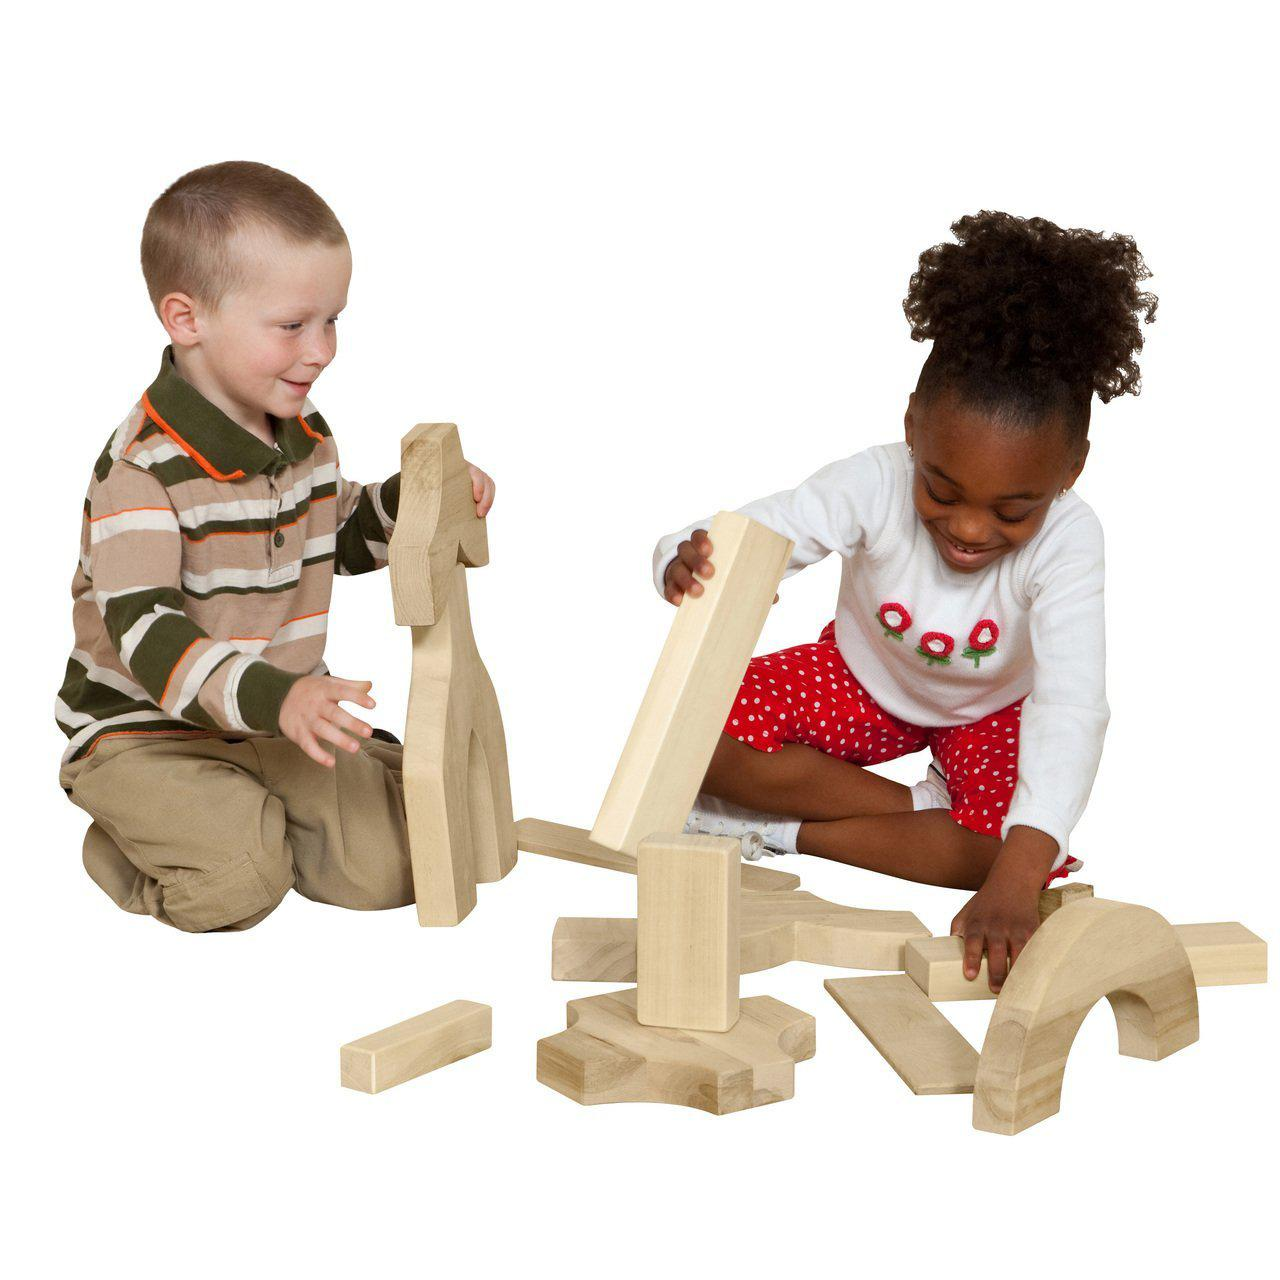 Wood Designs Preschool Blocks - 24 Shapes, 111 Pieces-Pre-School Furniture-